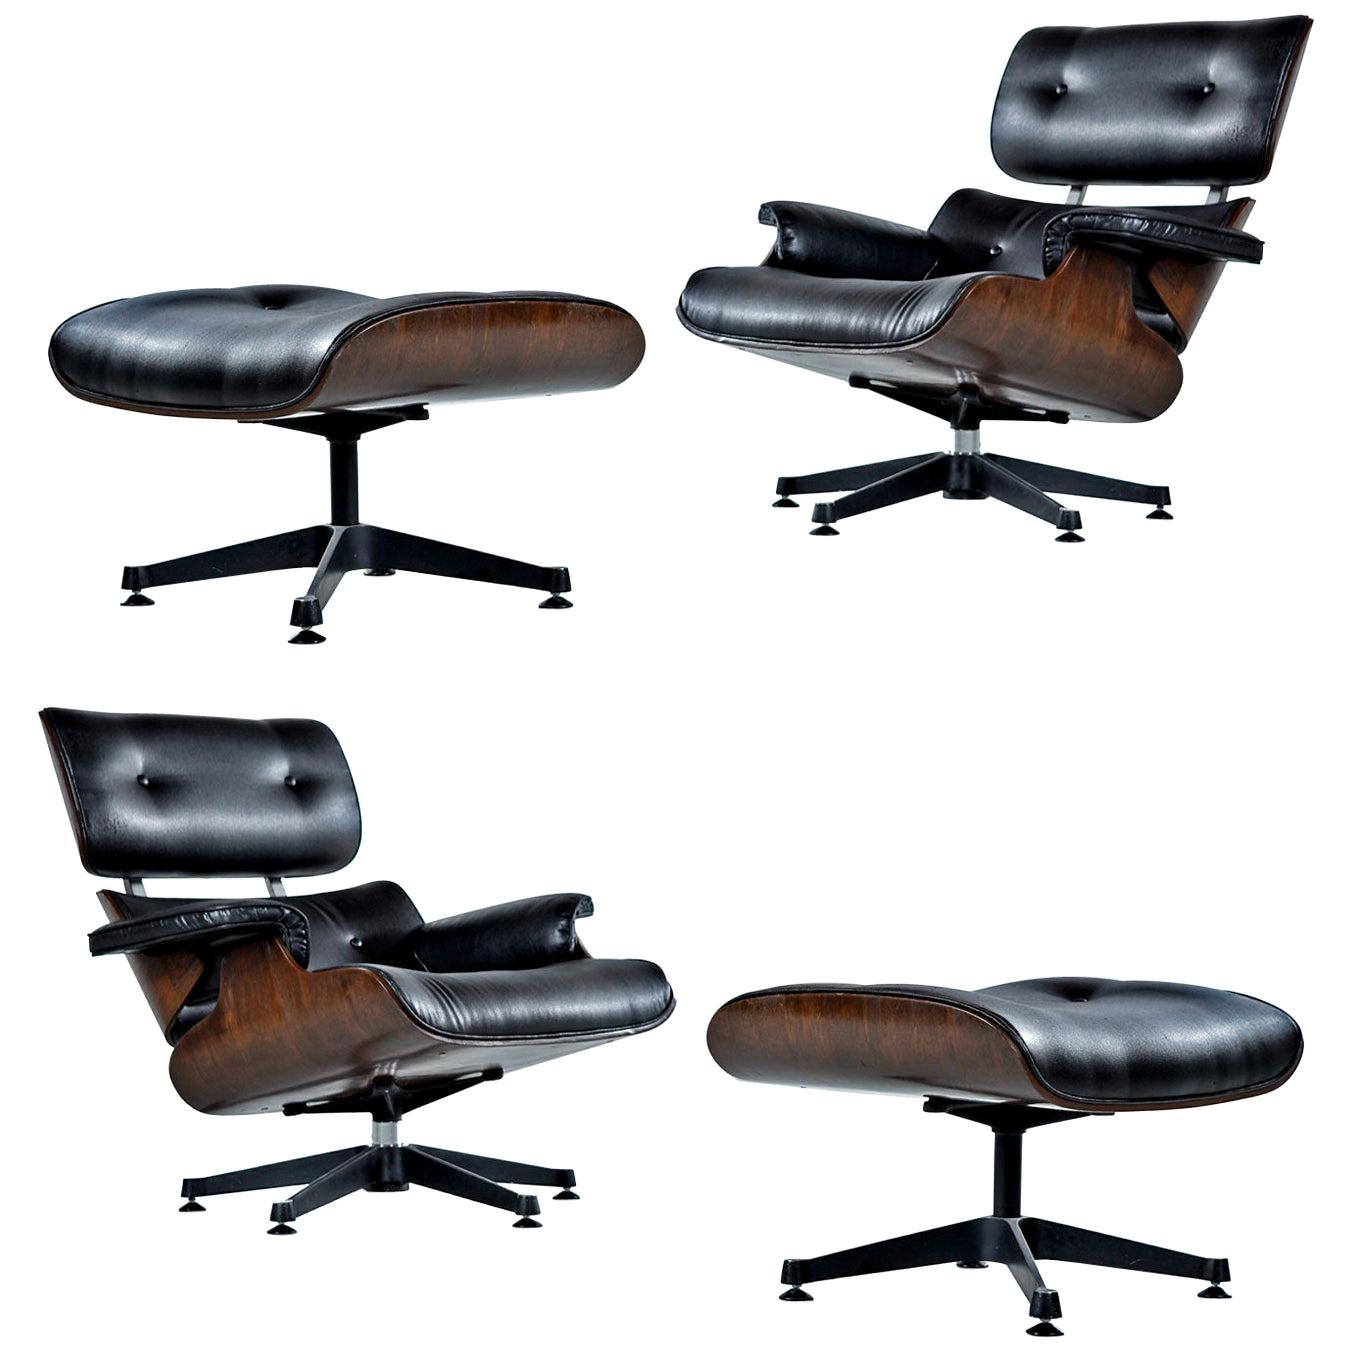 Remarkable Andoo Lounge Chair In Black Leather And Walnut By Eoos And Walter K Ncnpc Chair Design For Home Ncnpcorg